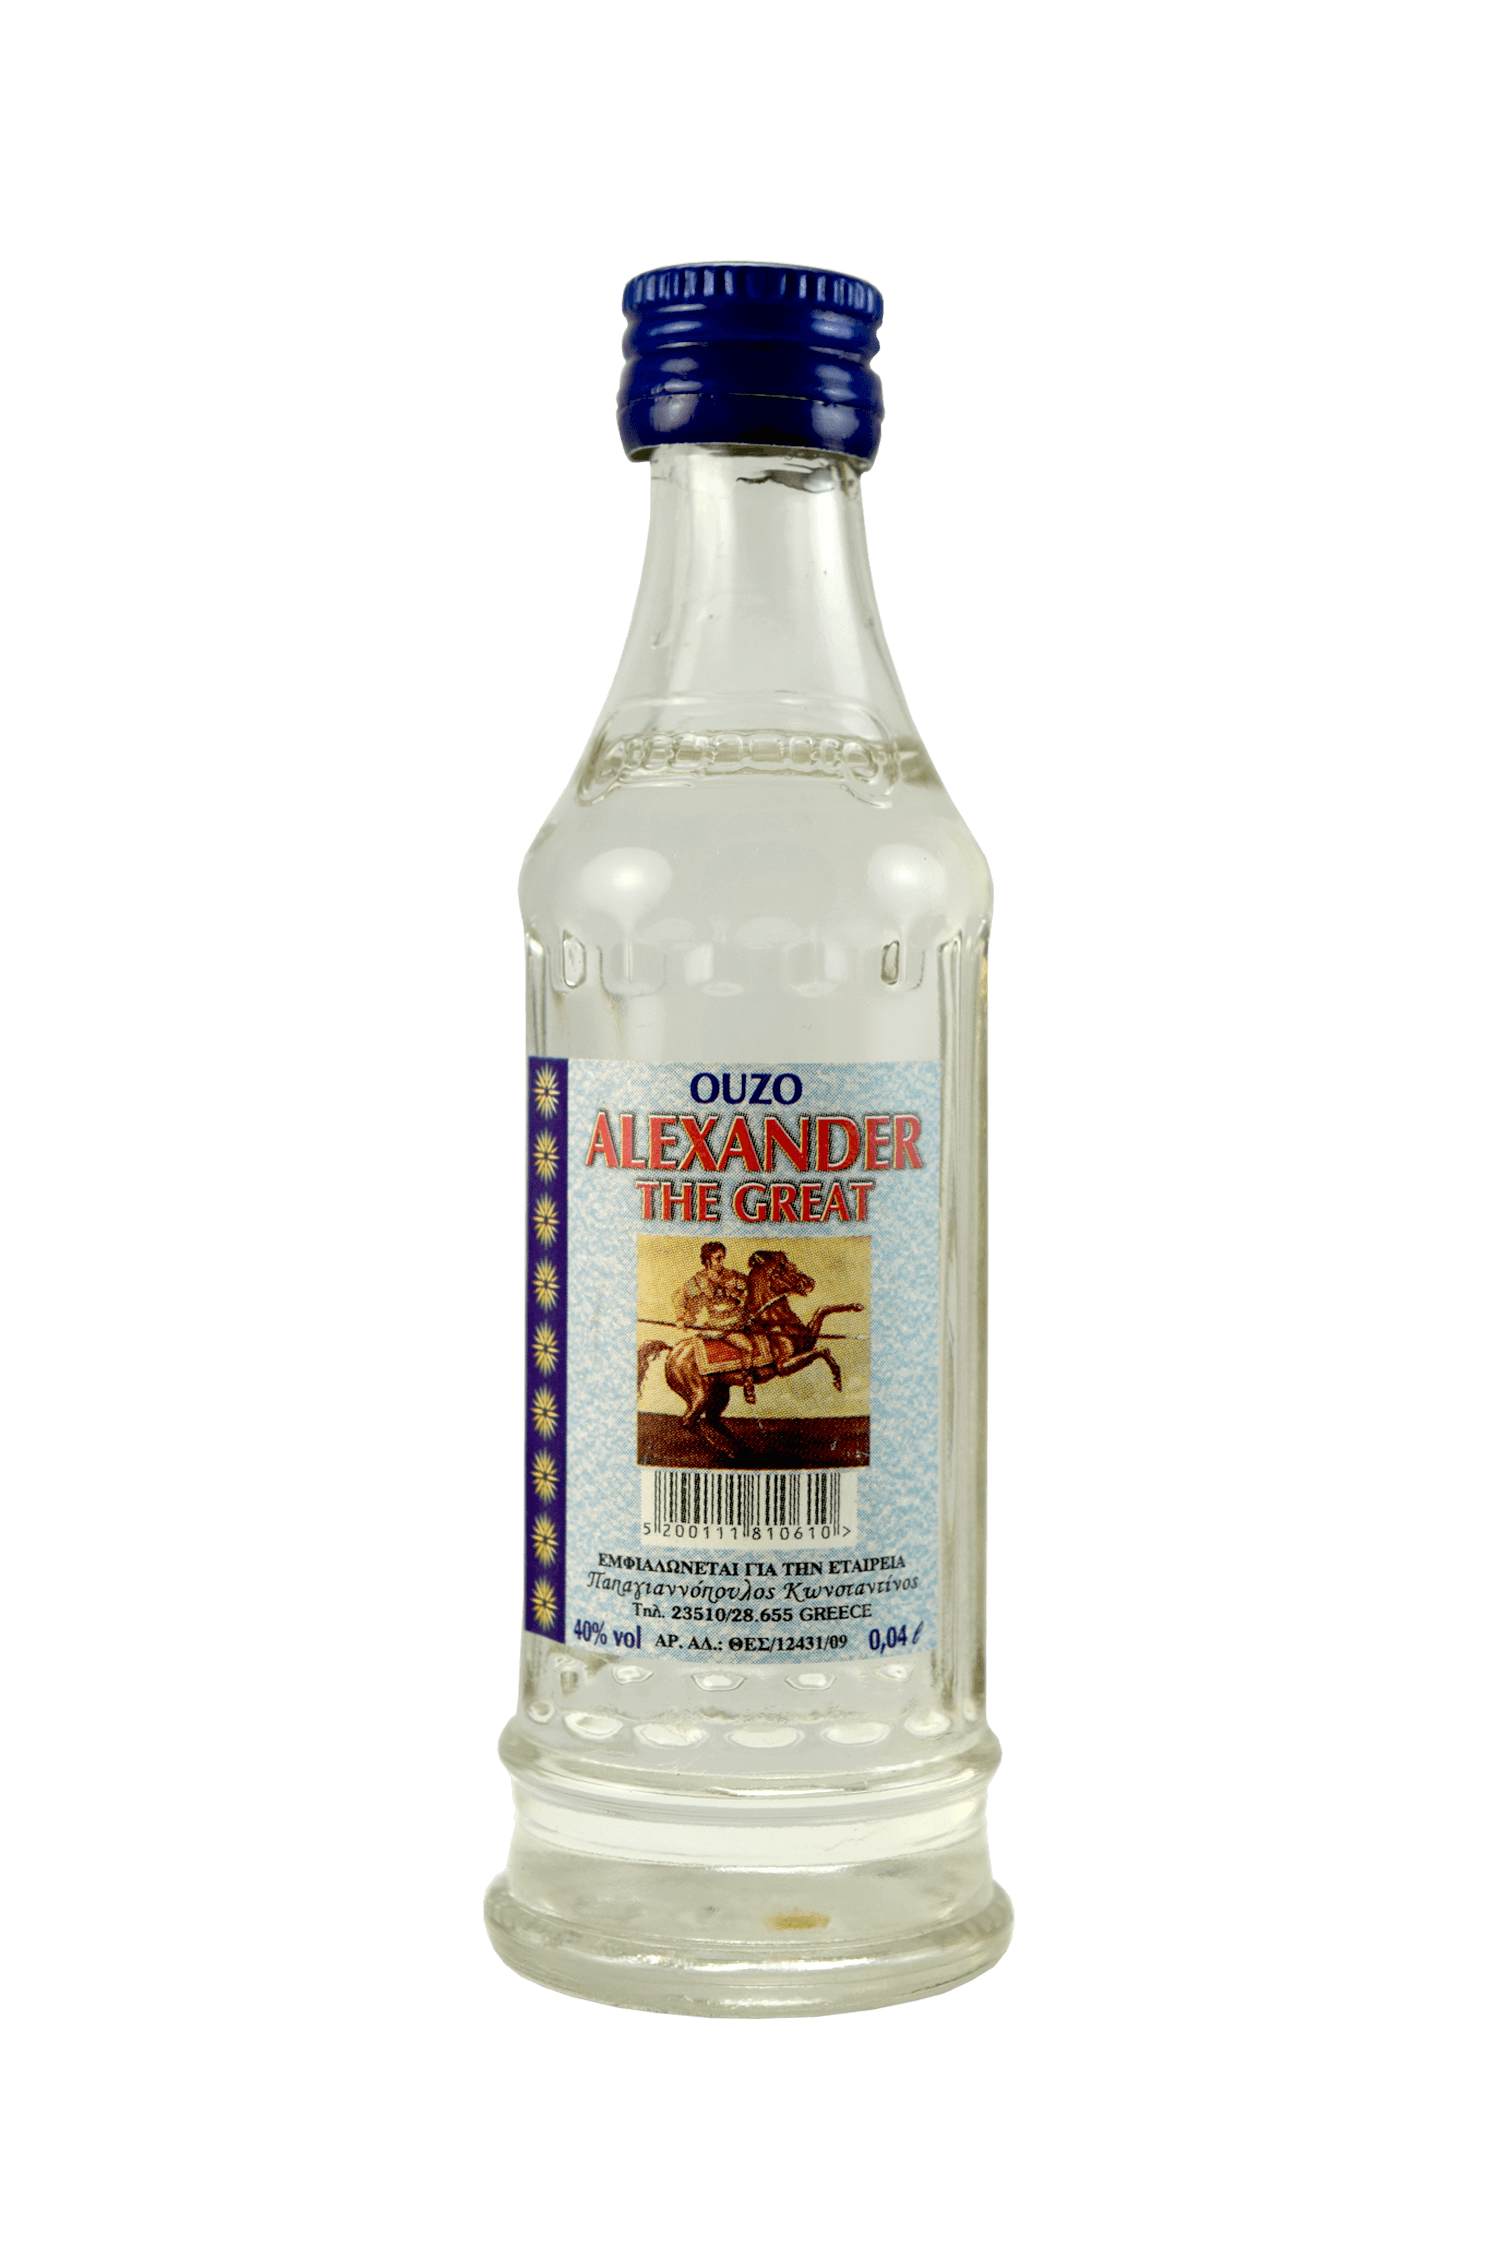 Ouzo Alexander The Great